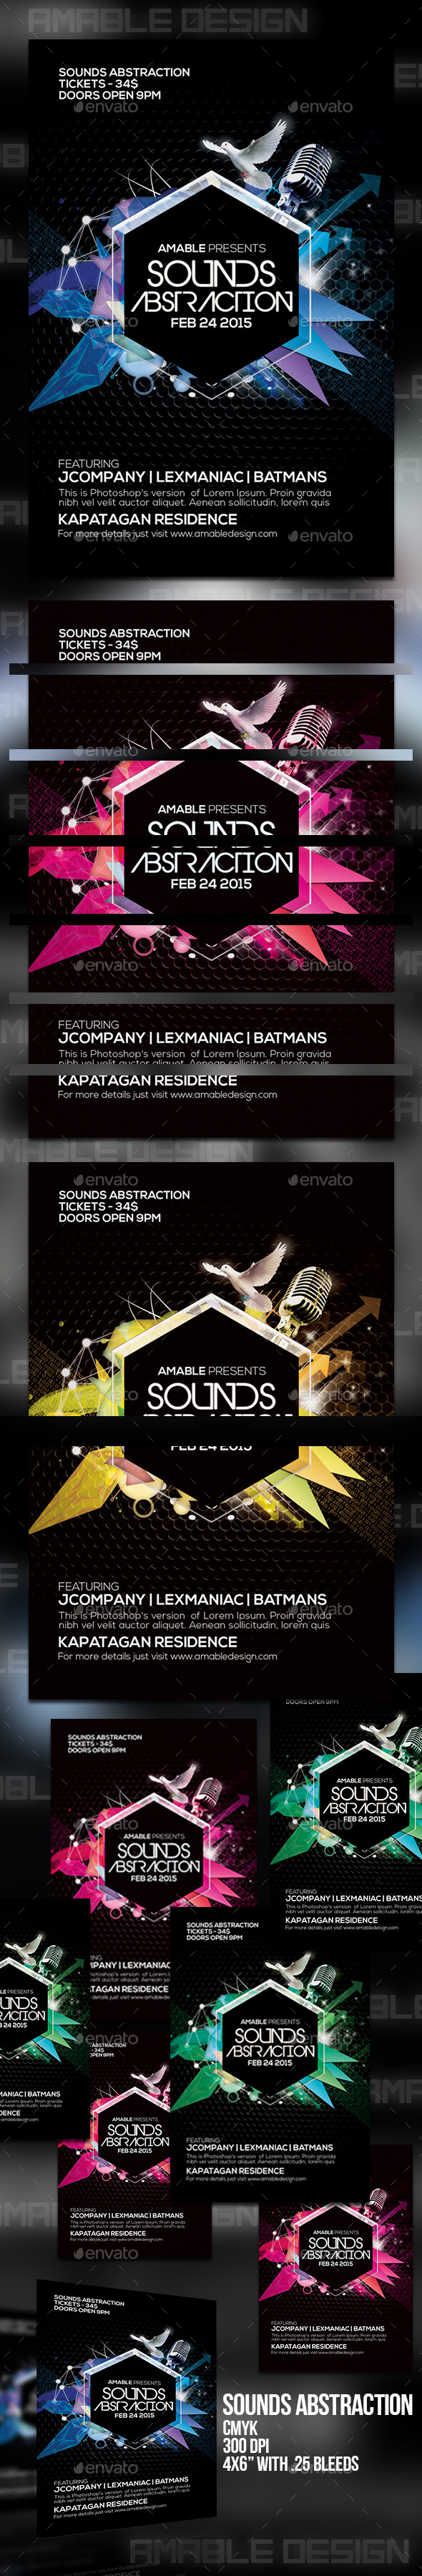 GraphicRiver Sounds Abstraction Flyer 10436402